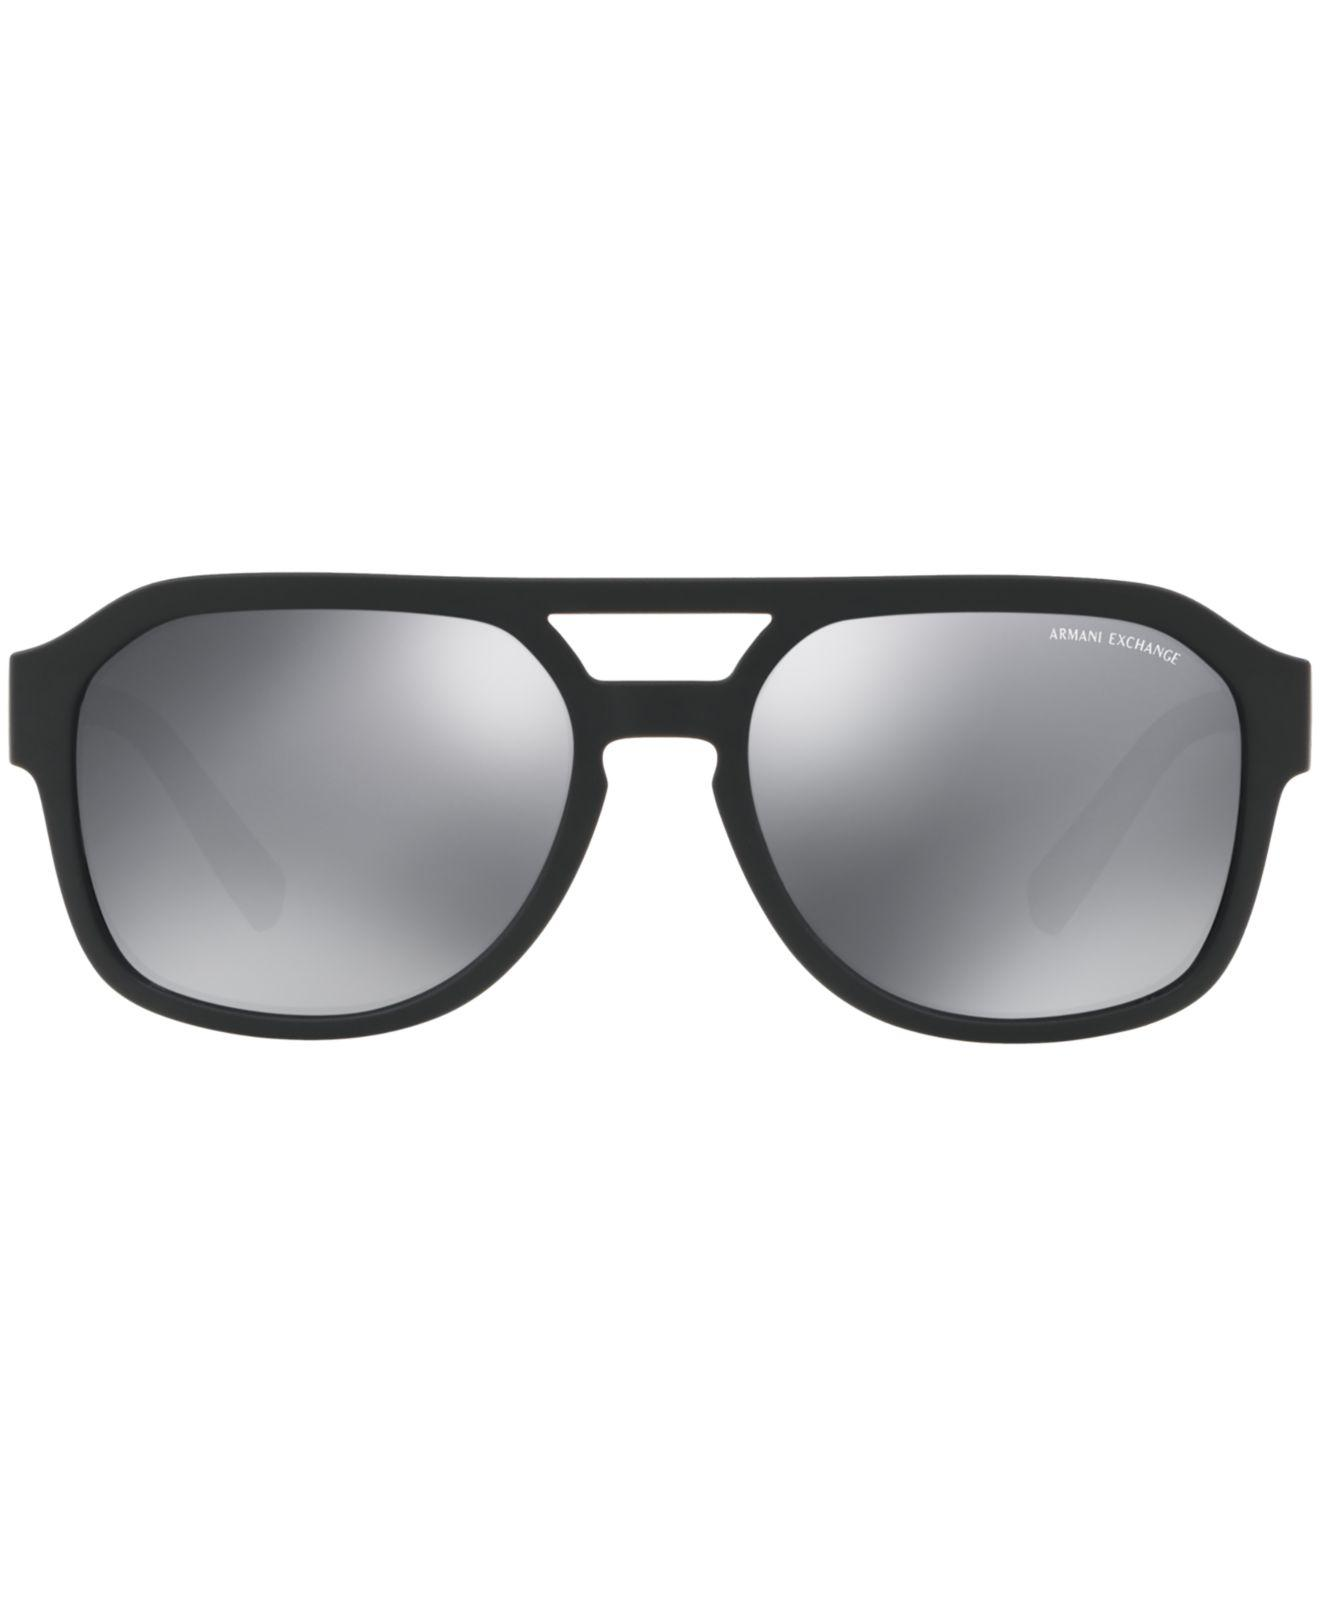 9c07e07c032 Lyst - Armani Exchange Ax4074s in Black for Men